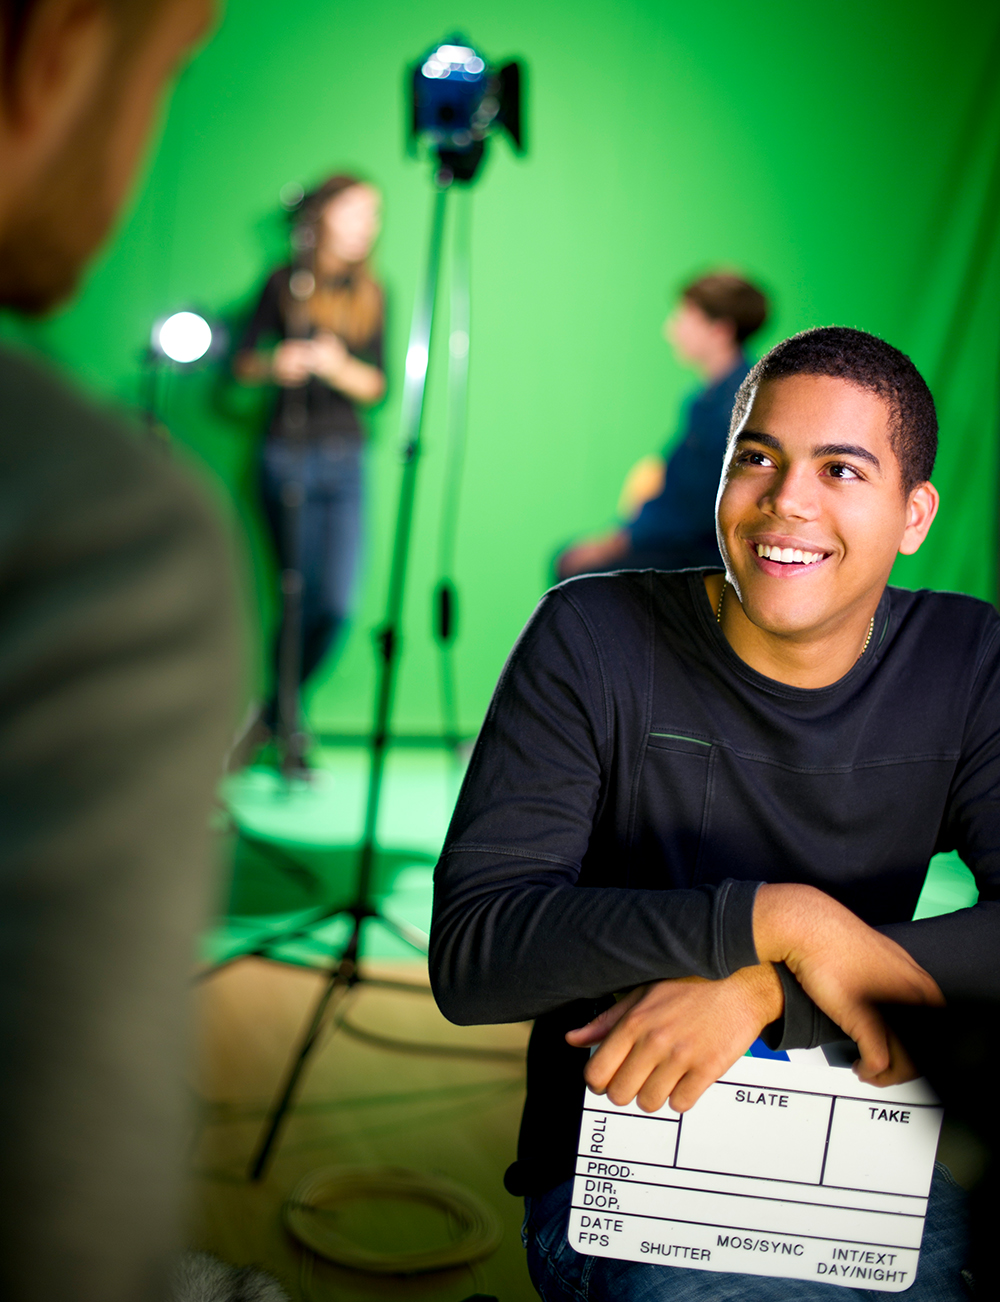 A student smiles while looking up at an internship colleague on a film set, with a green screen and lighting behind them.